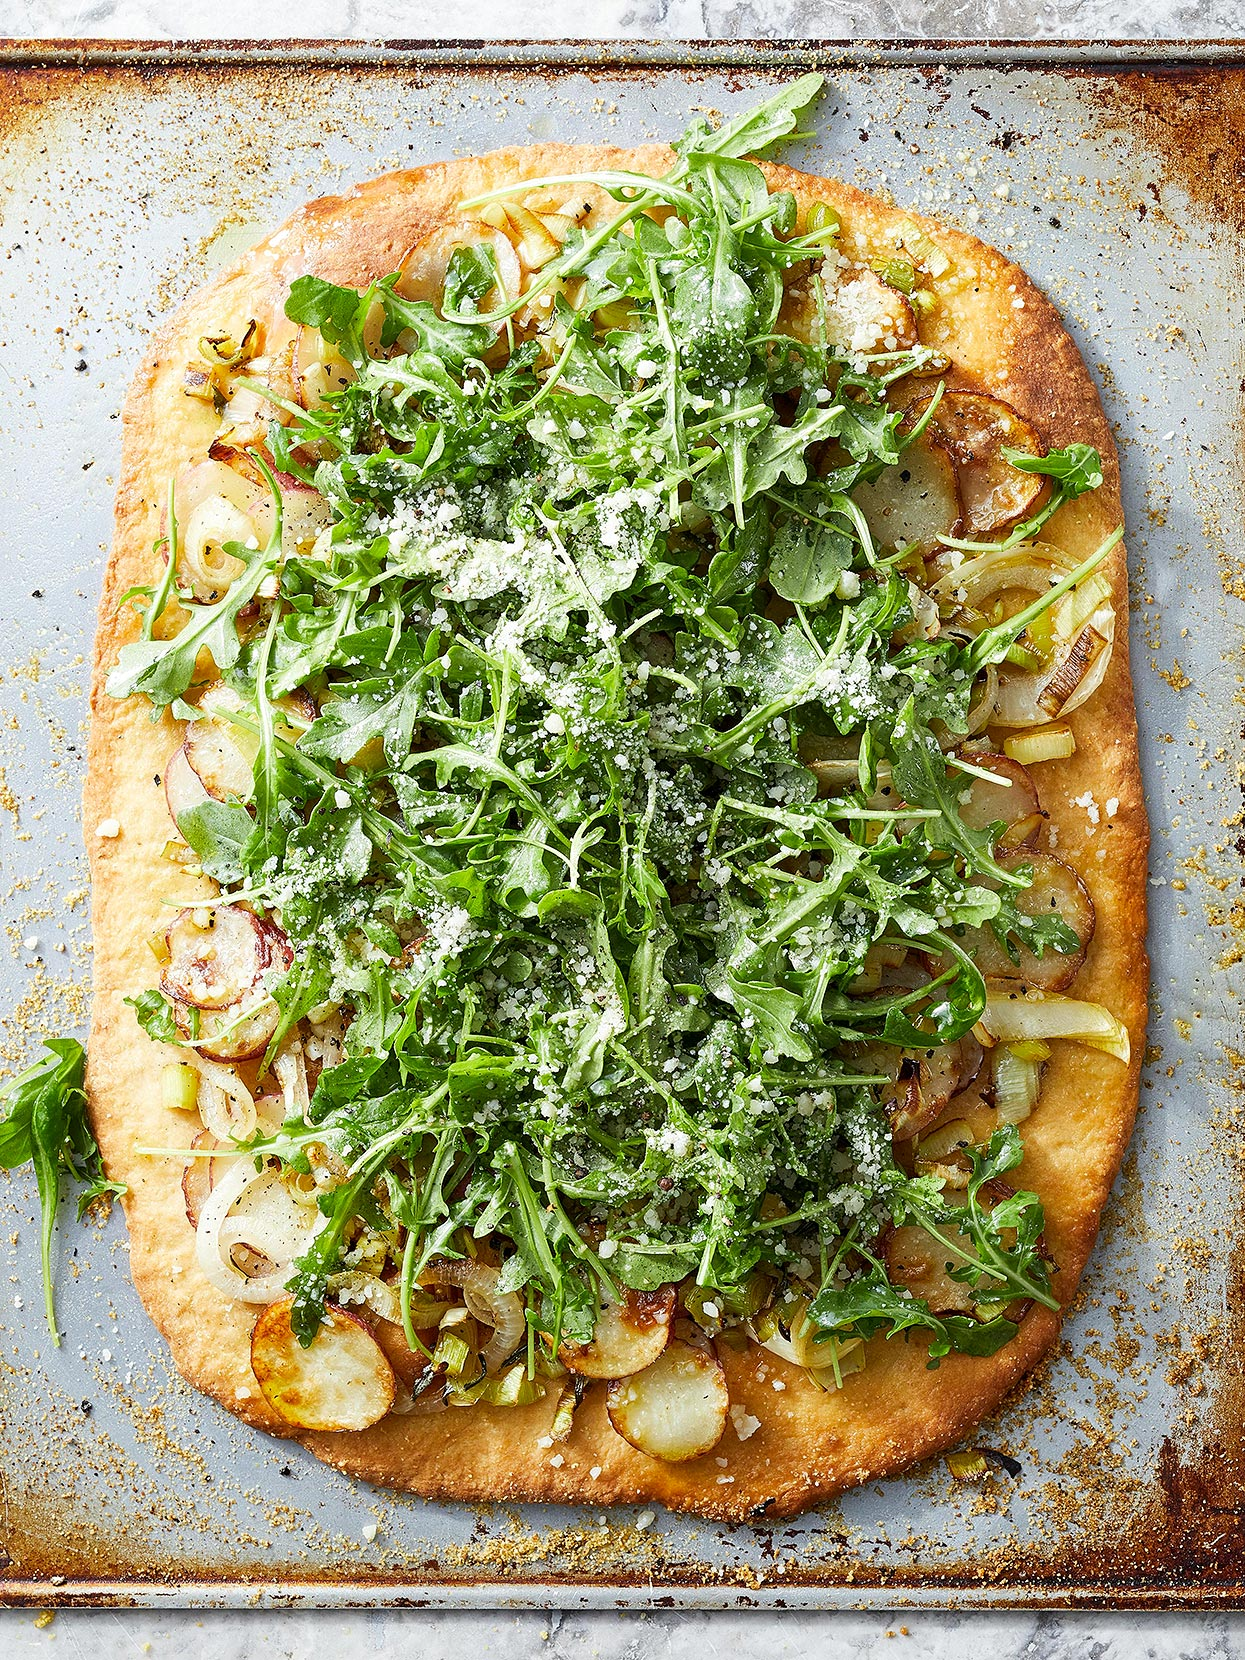 Potato and Leek Pizza with Arugula